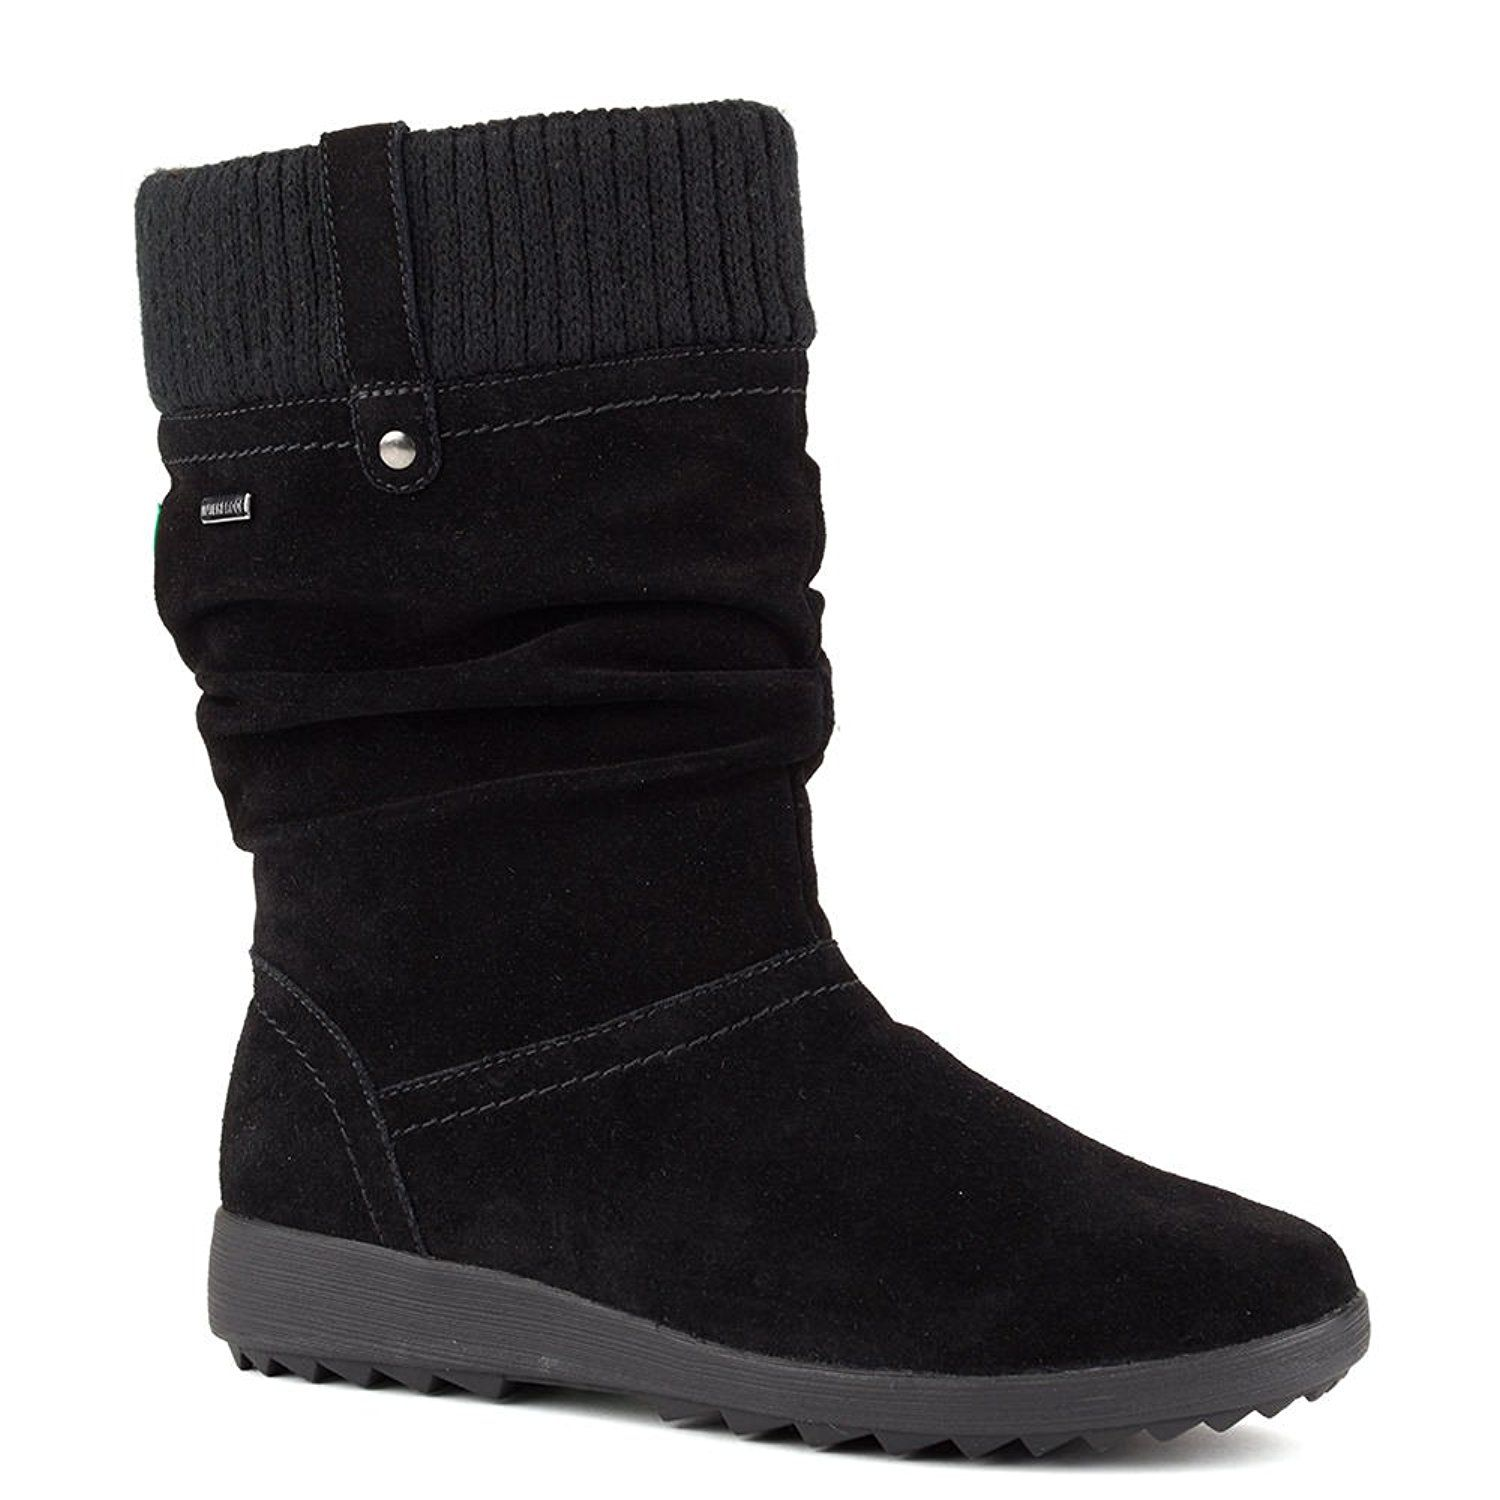 Pin on Women's winter boots